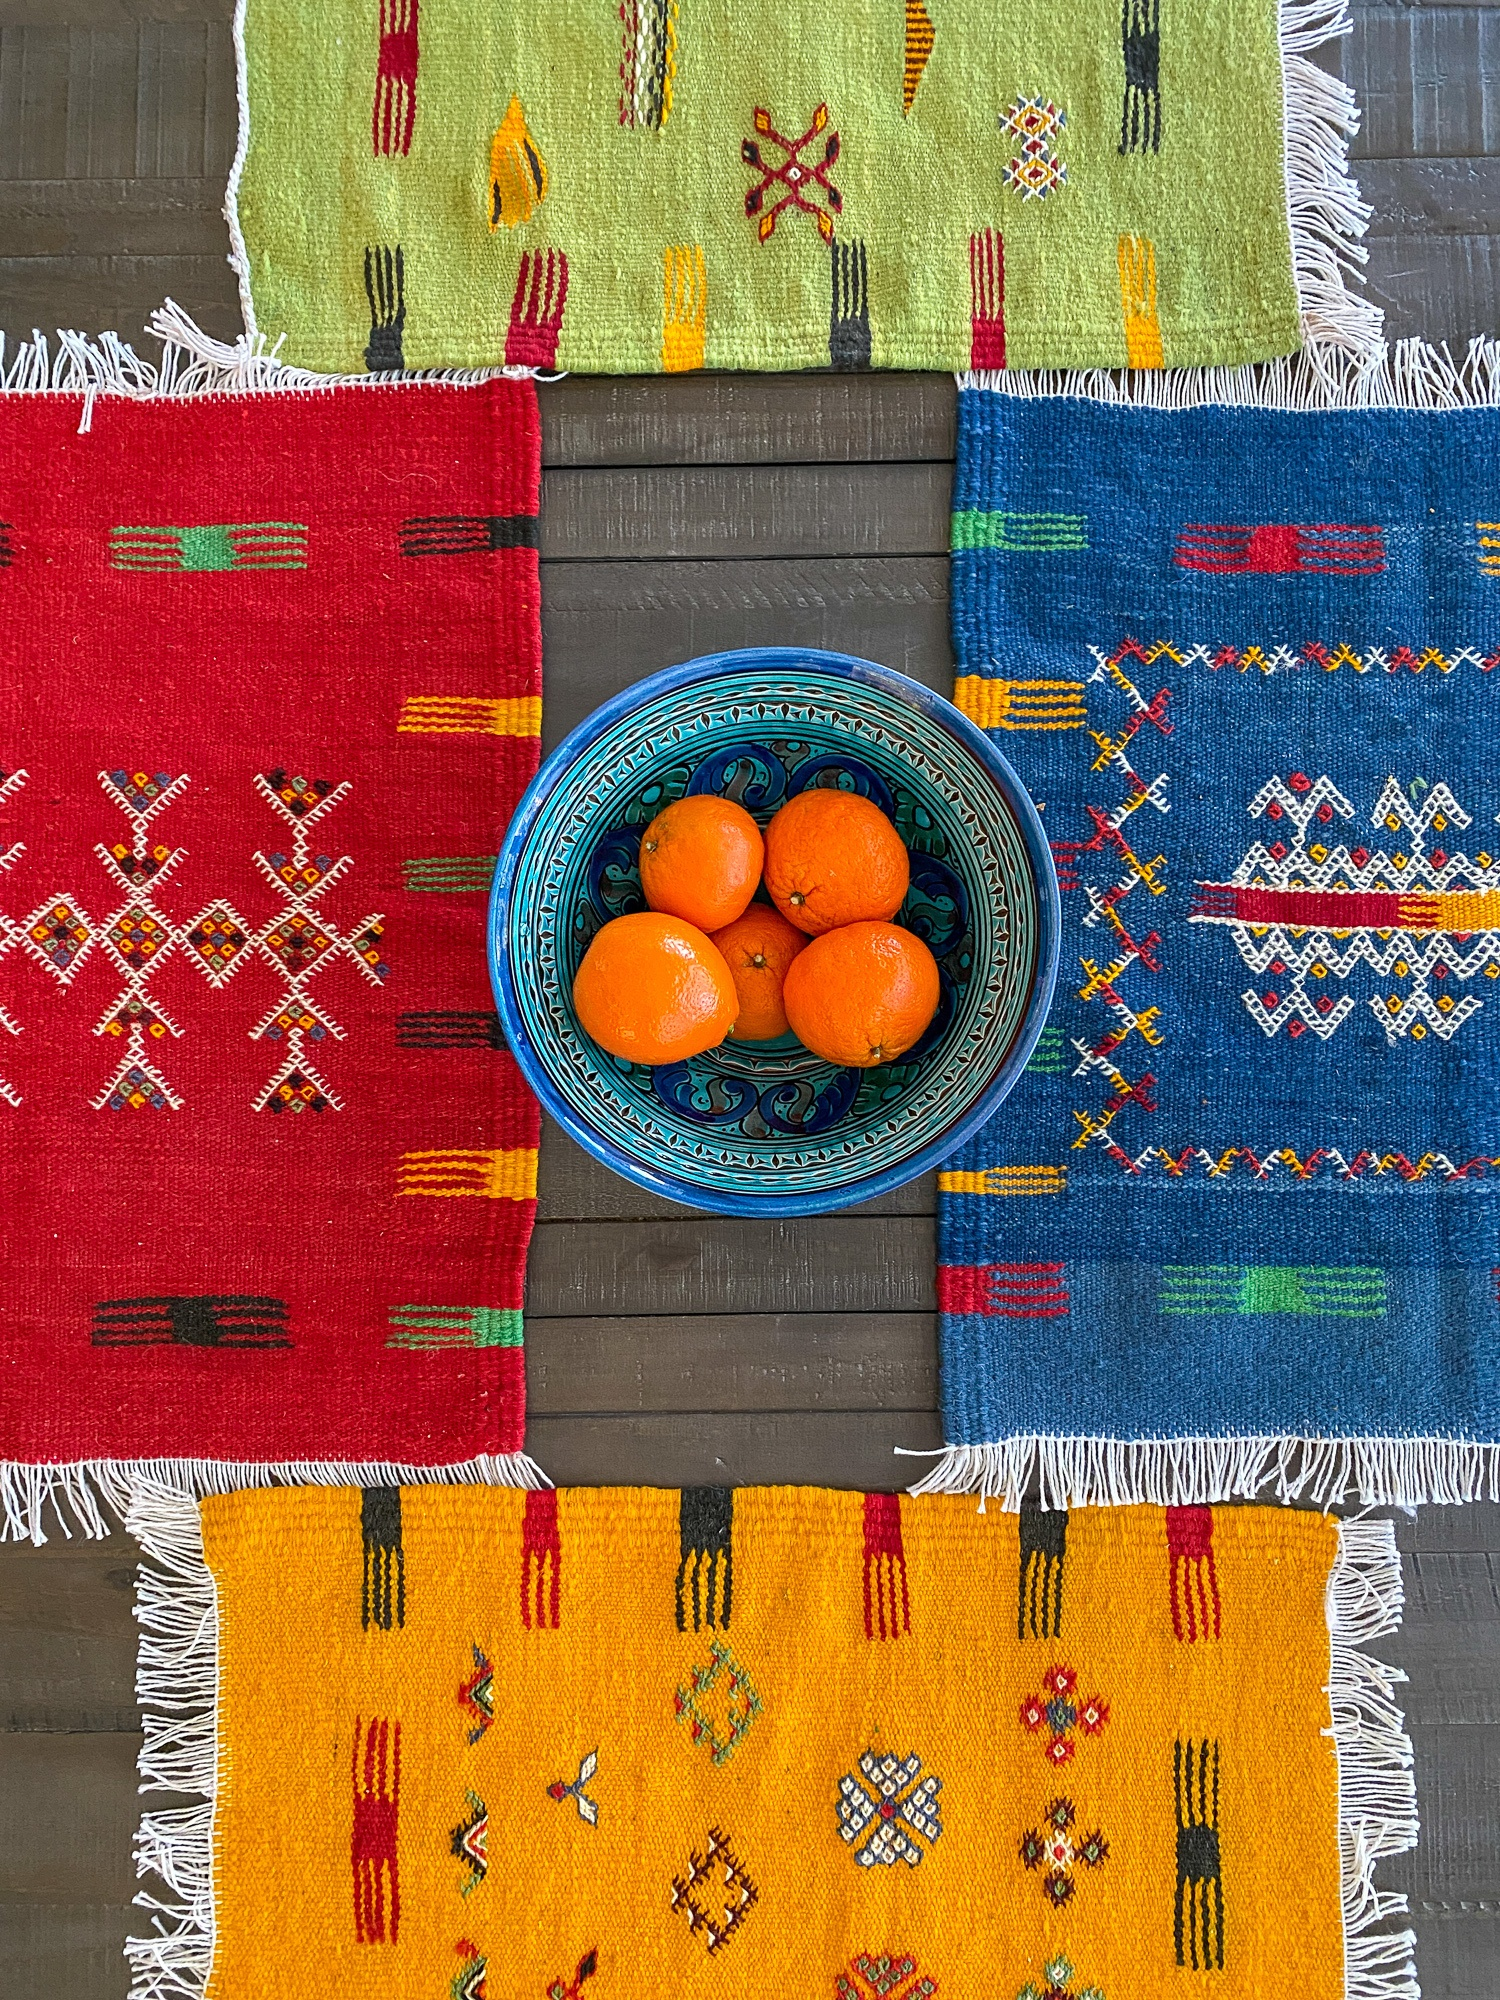 Berber placemats from Aknif Glaoui co-op and ceramic bowl purchased from the souks in Marrakech